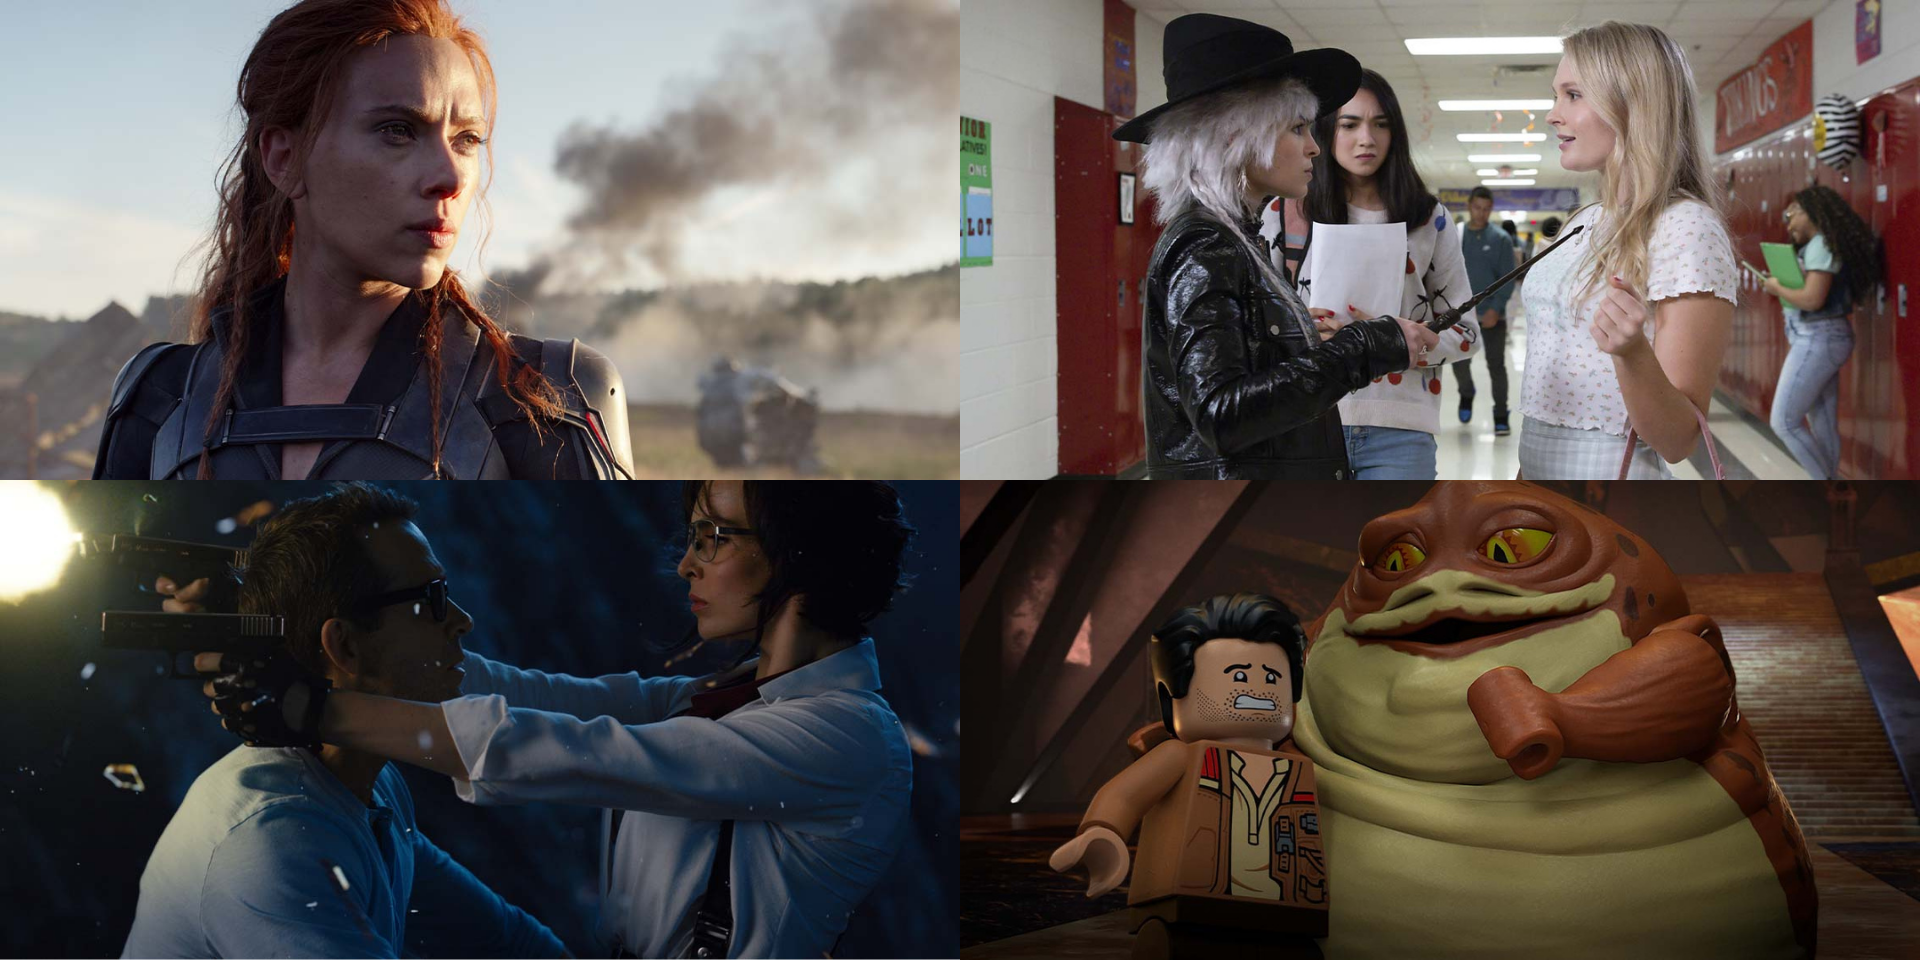 What's new on Disney+ Singapore this October: Free Guy, Just Beyond, Lego Star Wars Terrifying Tales, Black Widow, and more